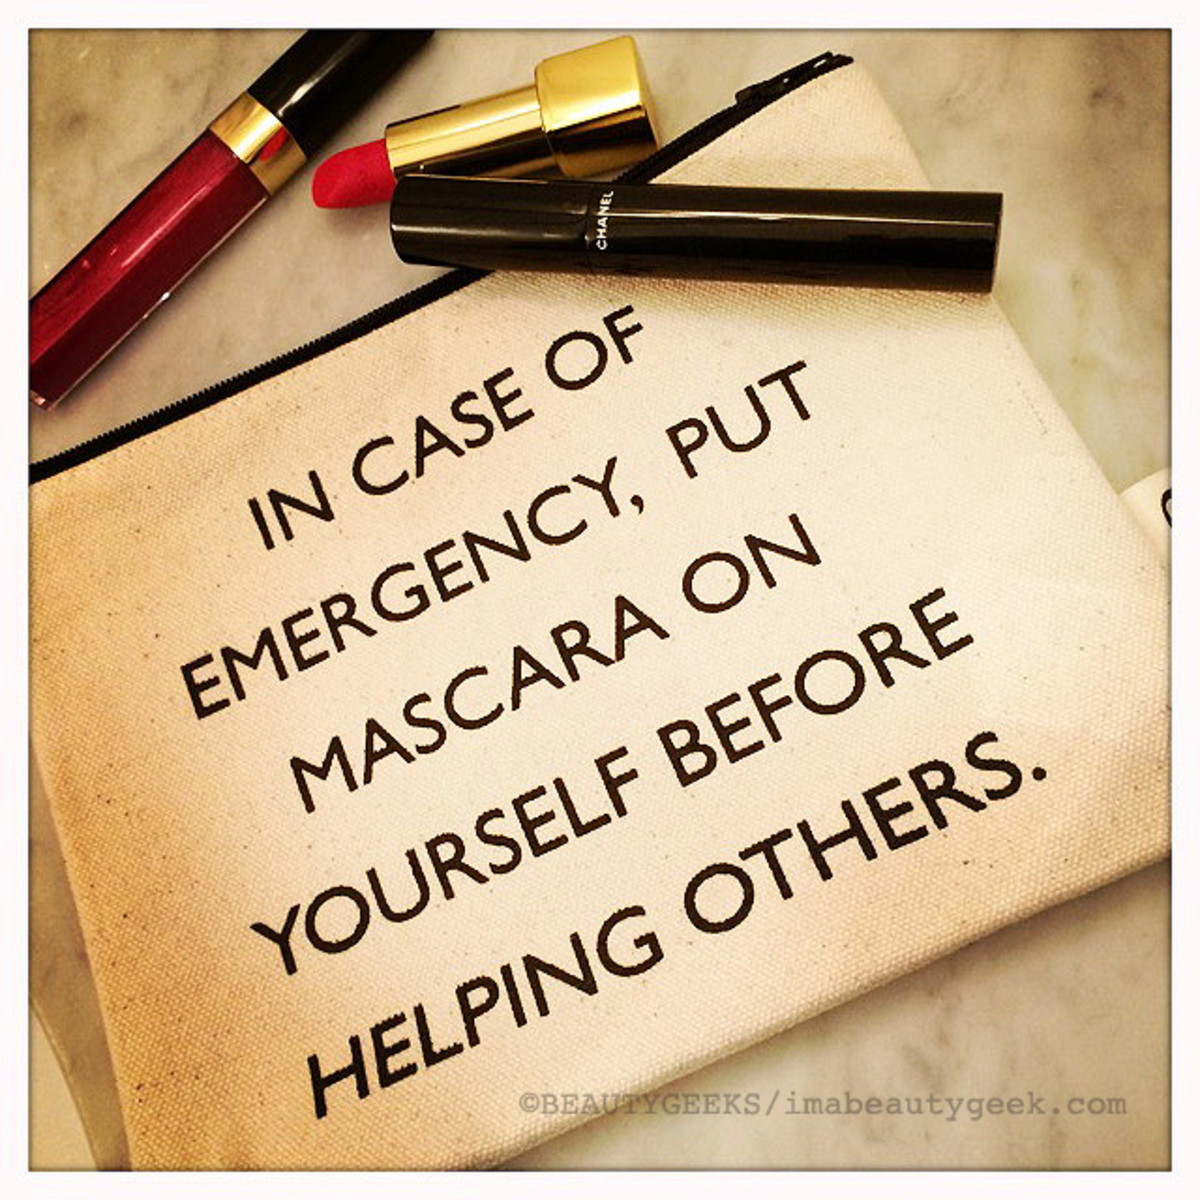 In case of emergency, put mascara on y ourself before helping others_Pamela Barsky pouch